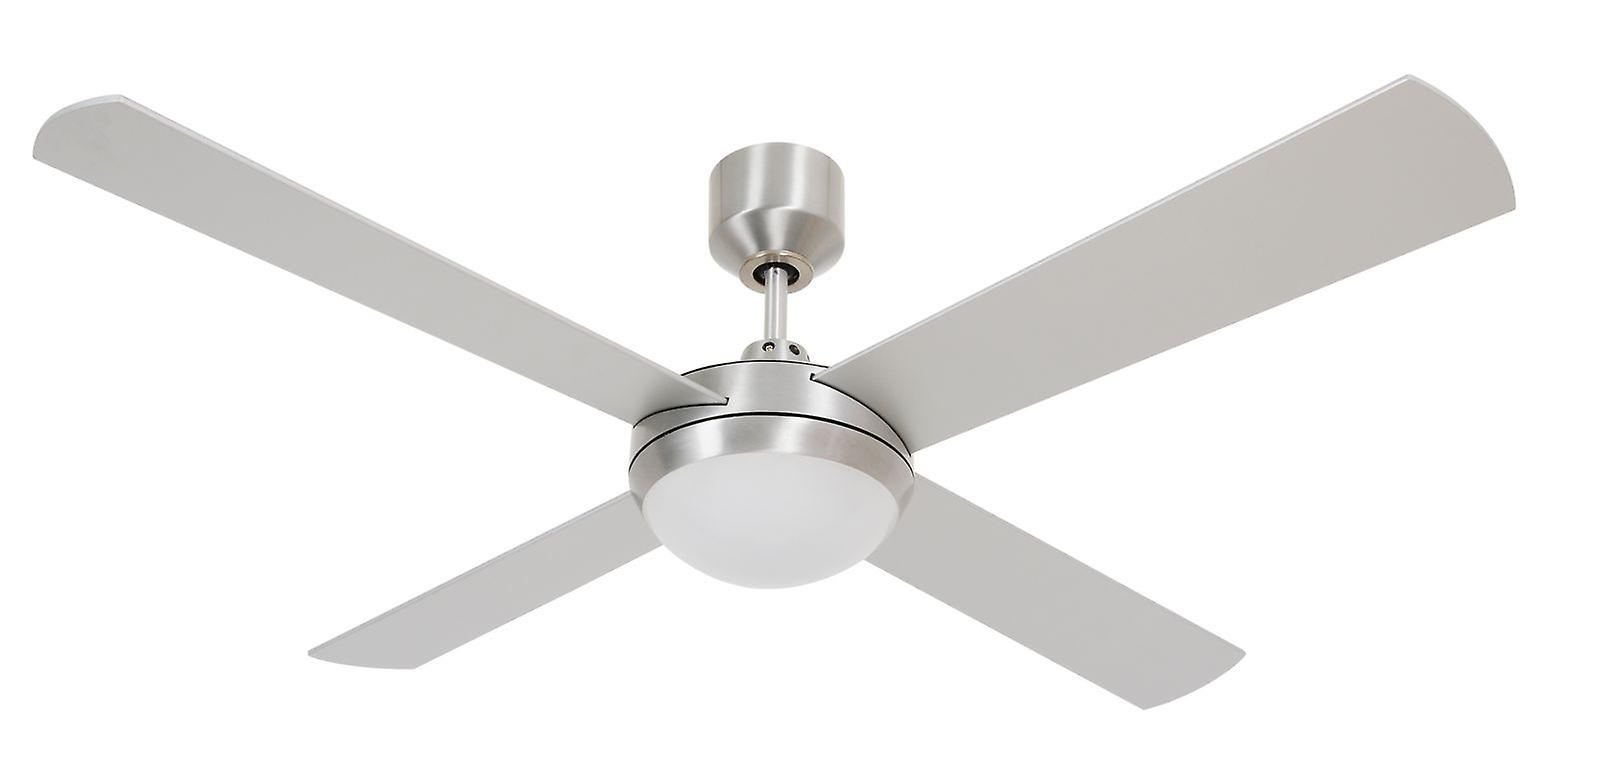 LED ceiling fan Futura Eco argent with remote control